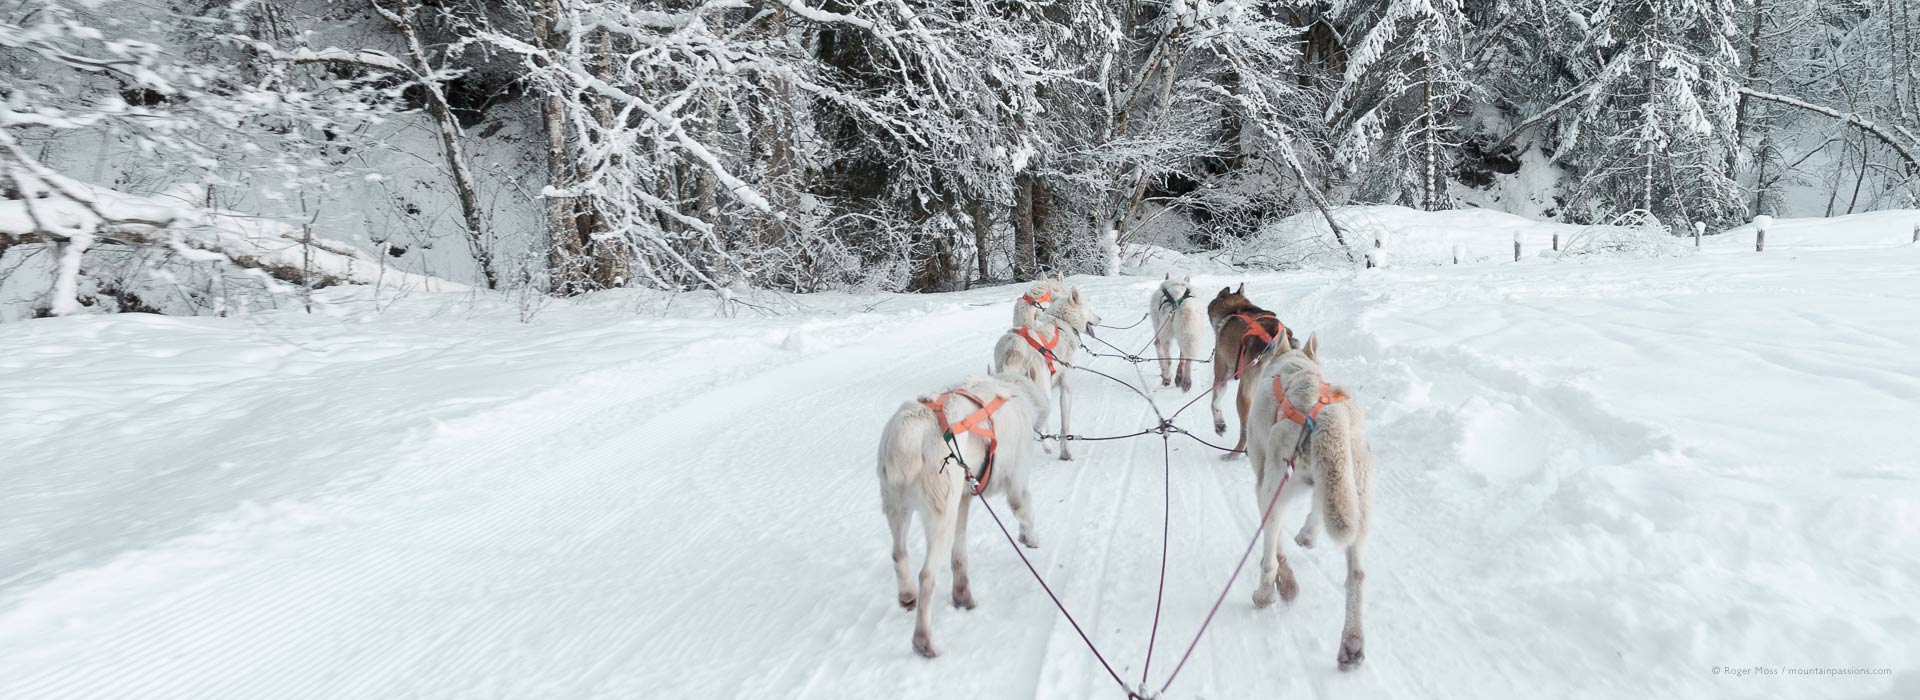 Musher's view of sled dog team with fresh snow and forest